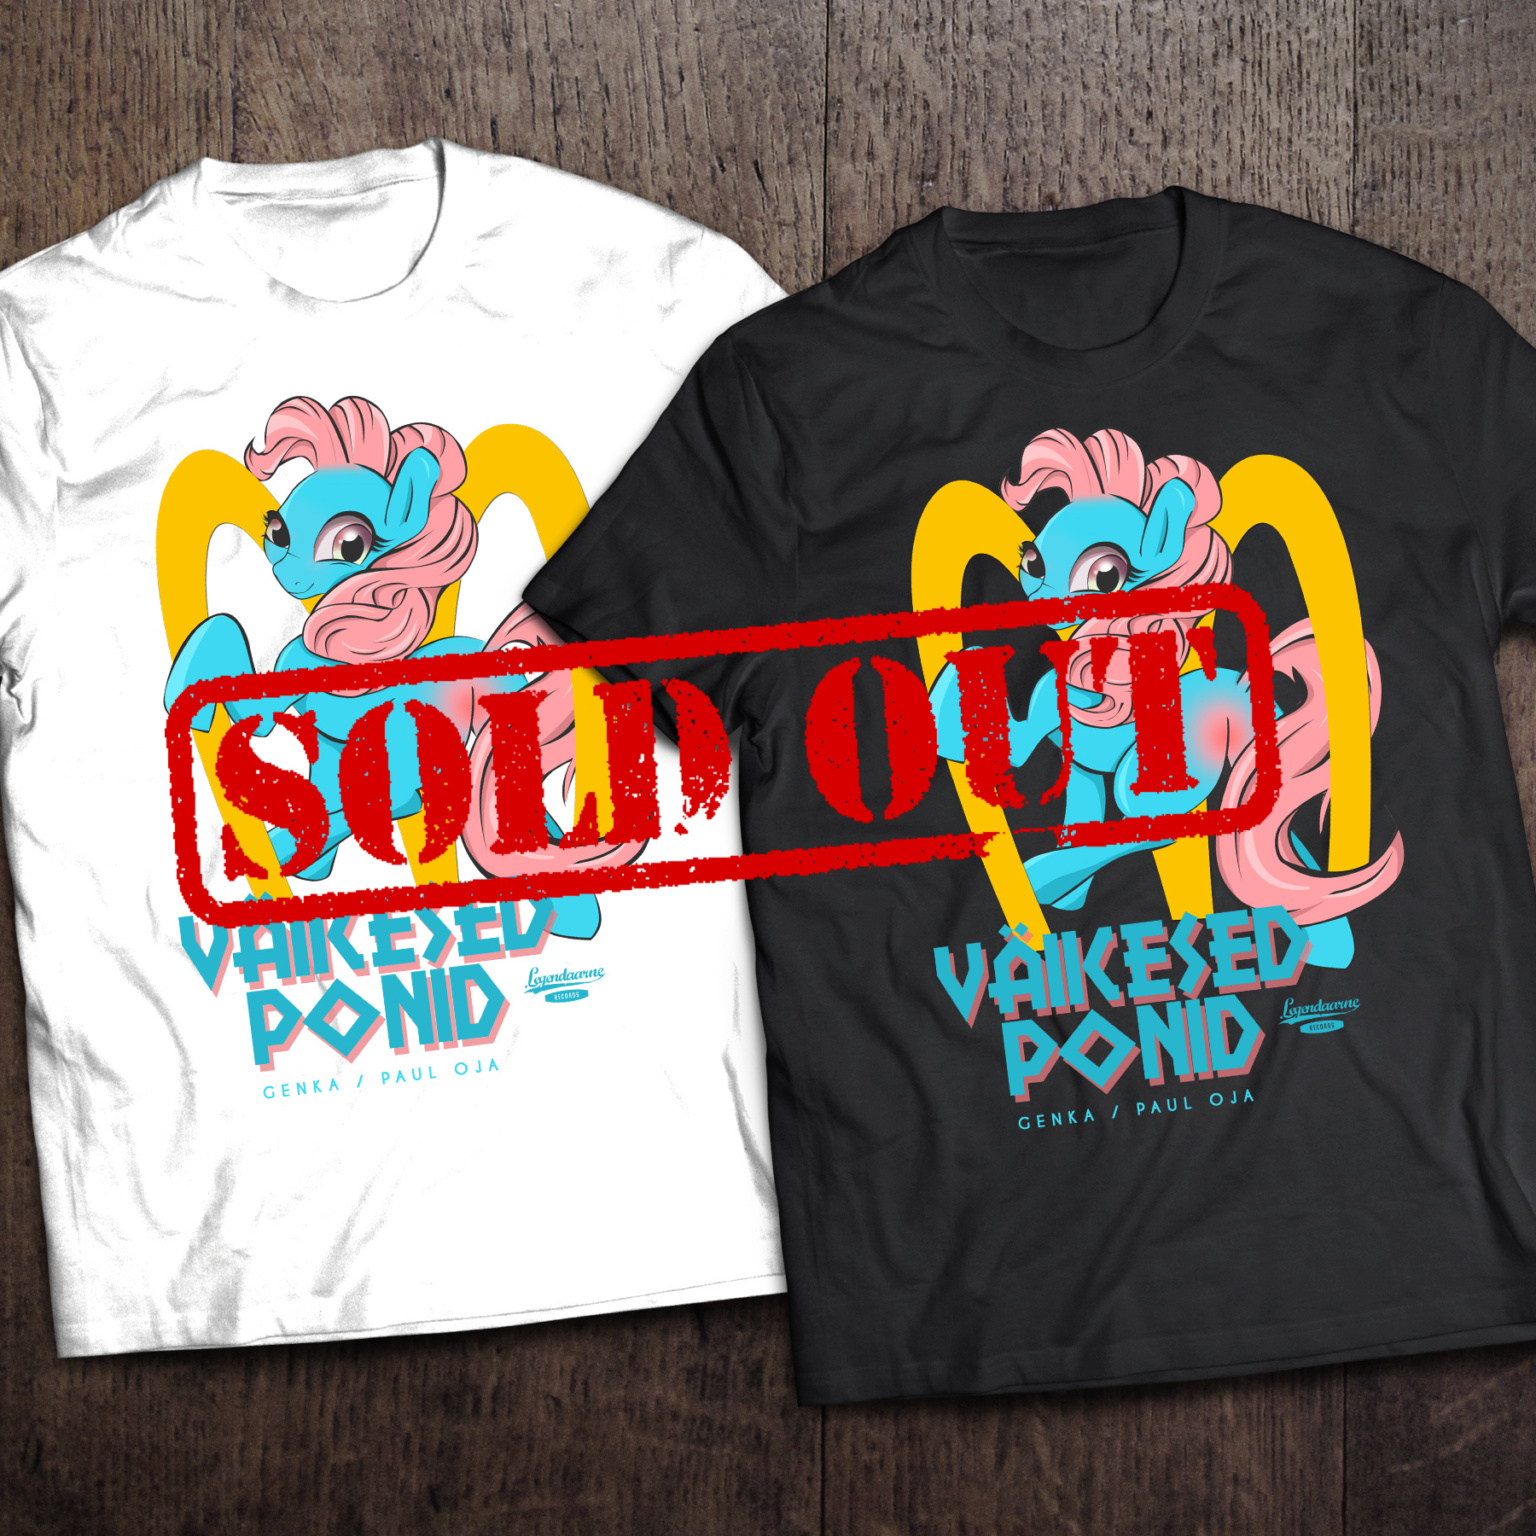 ponid-sold-out3